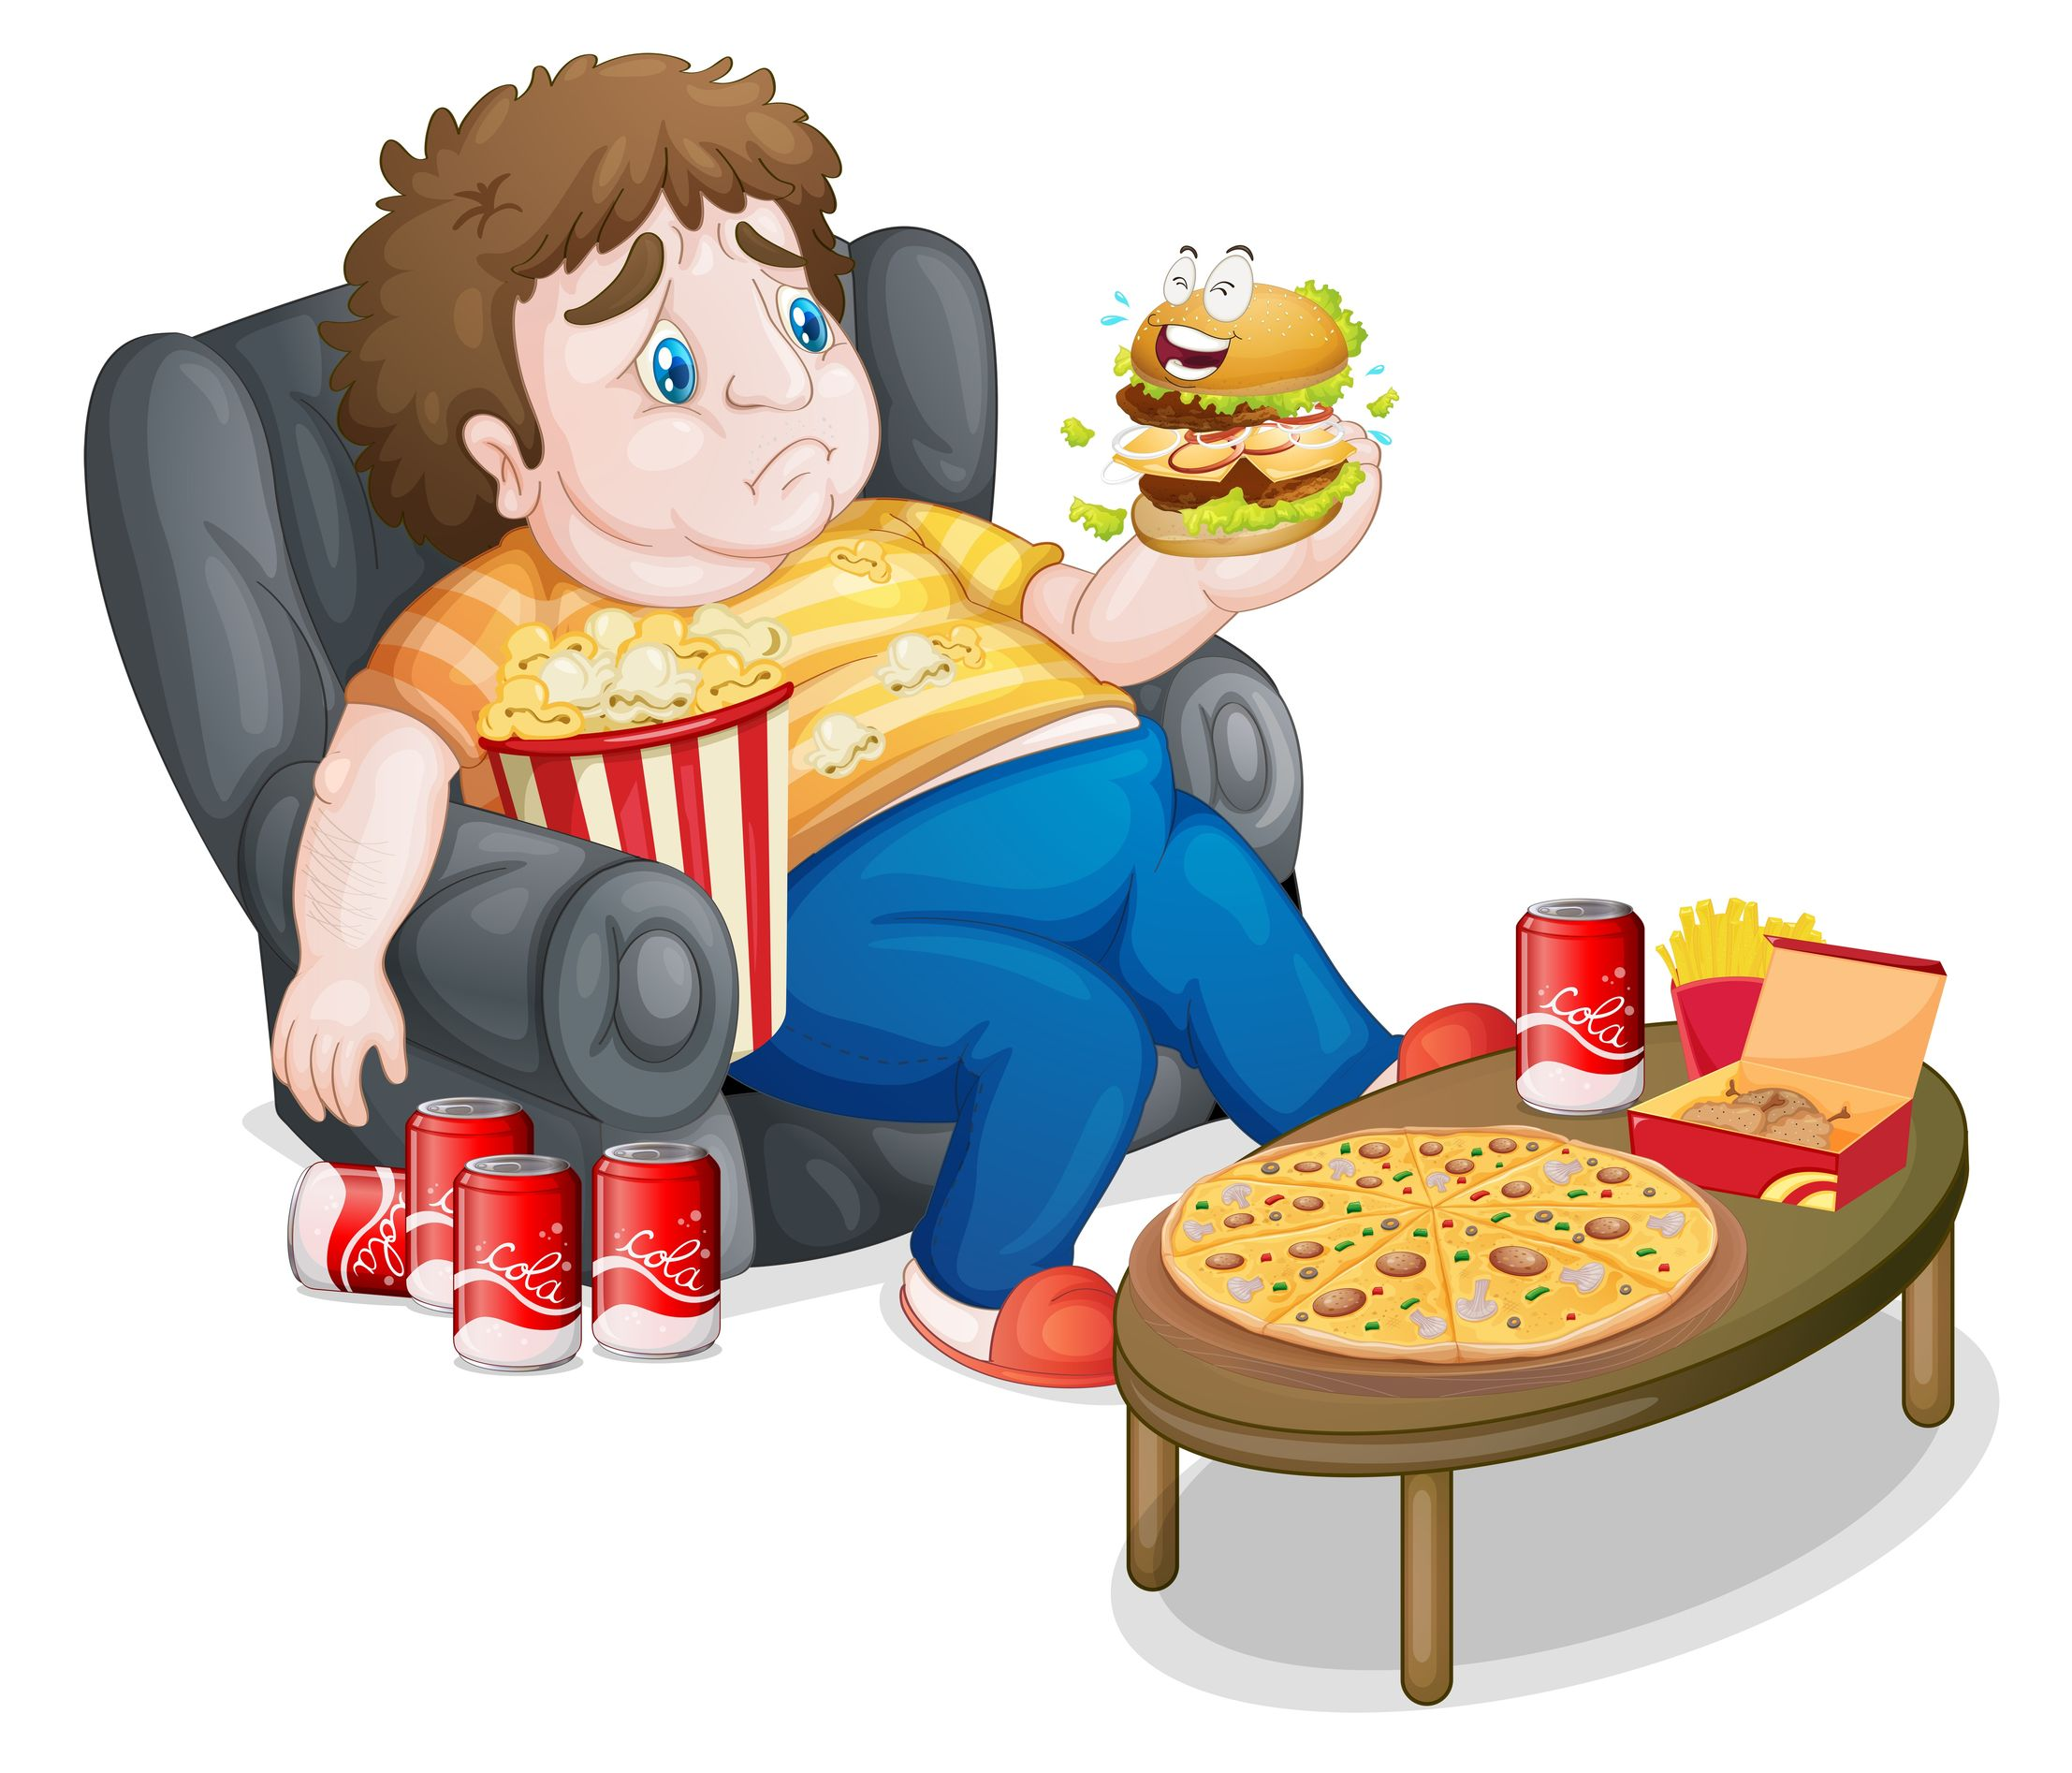 PARENT ALERT - Obesity in Children is a Problem